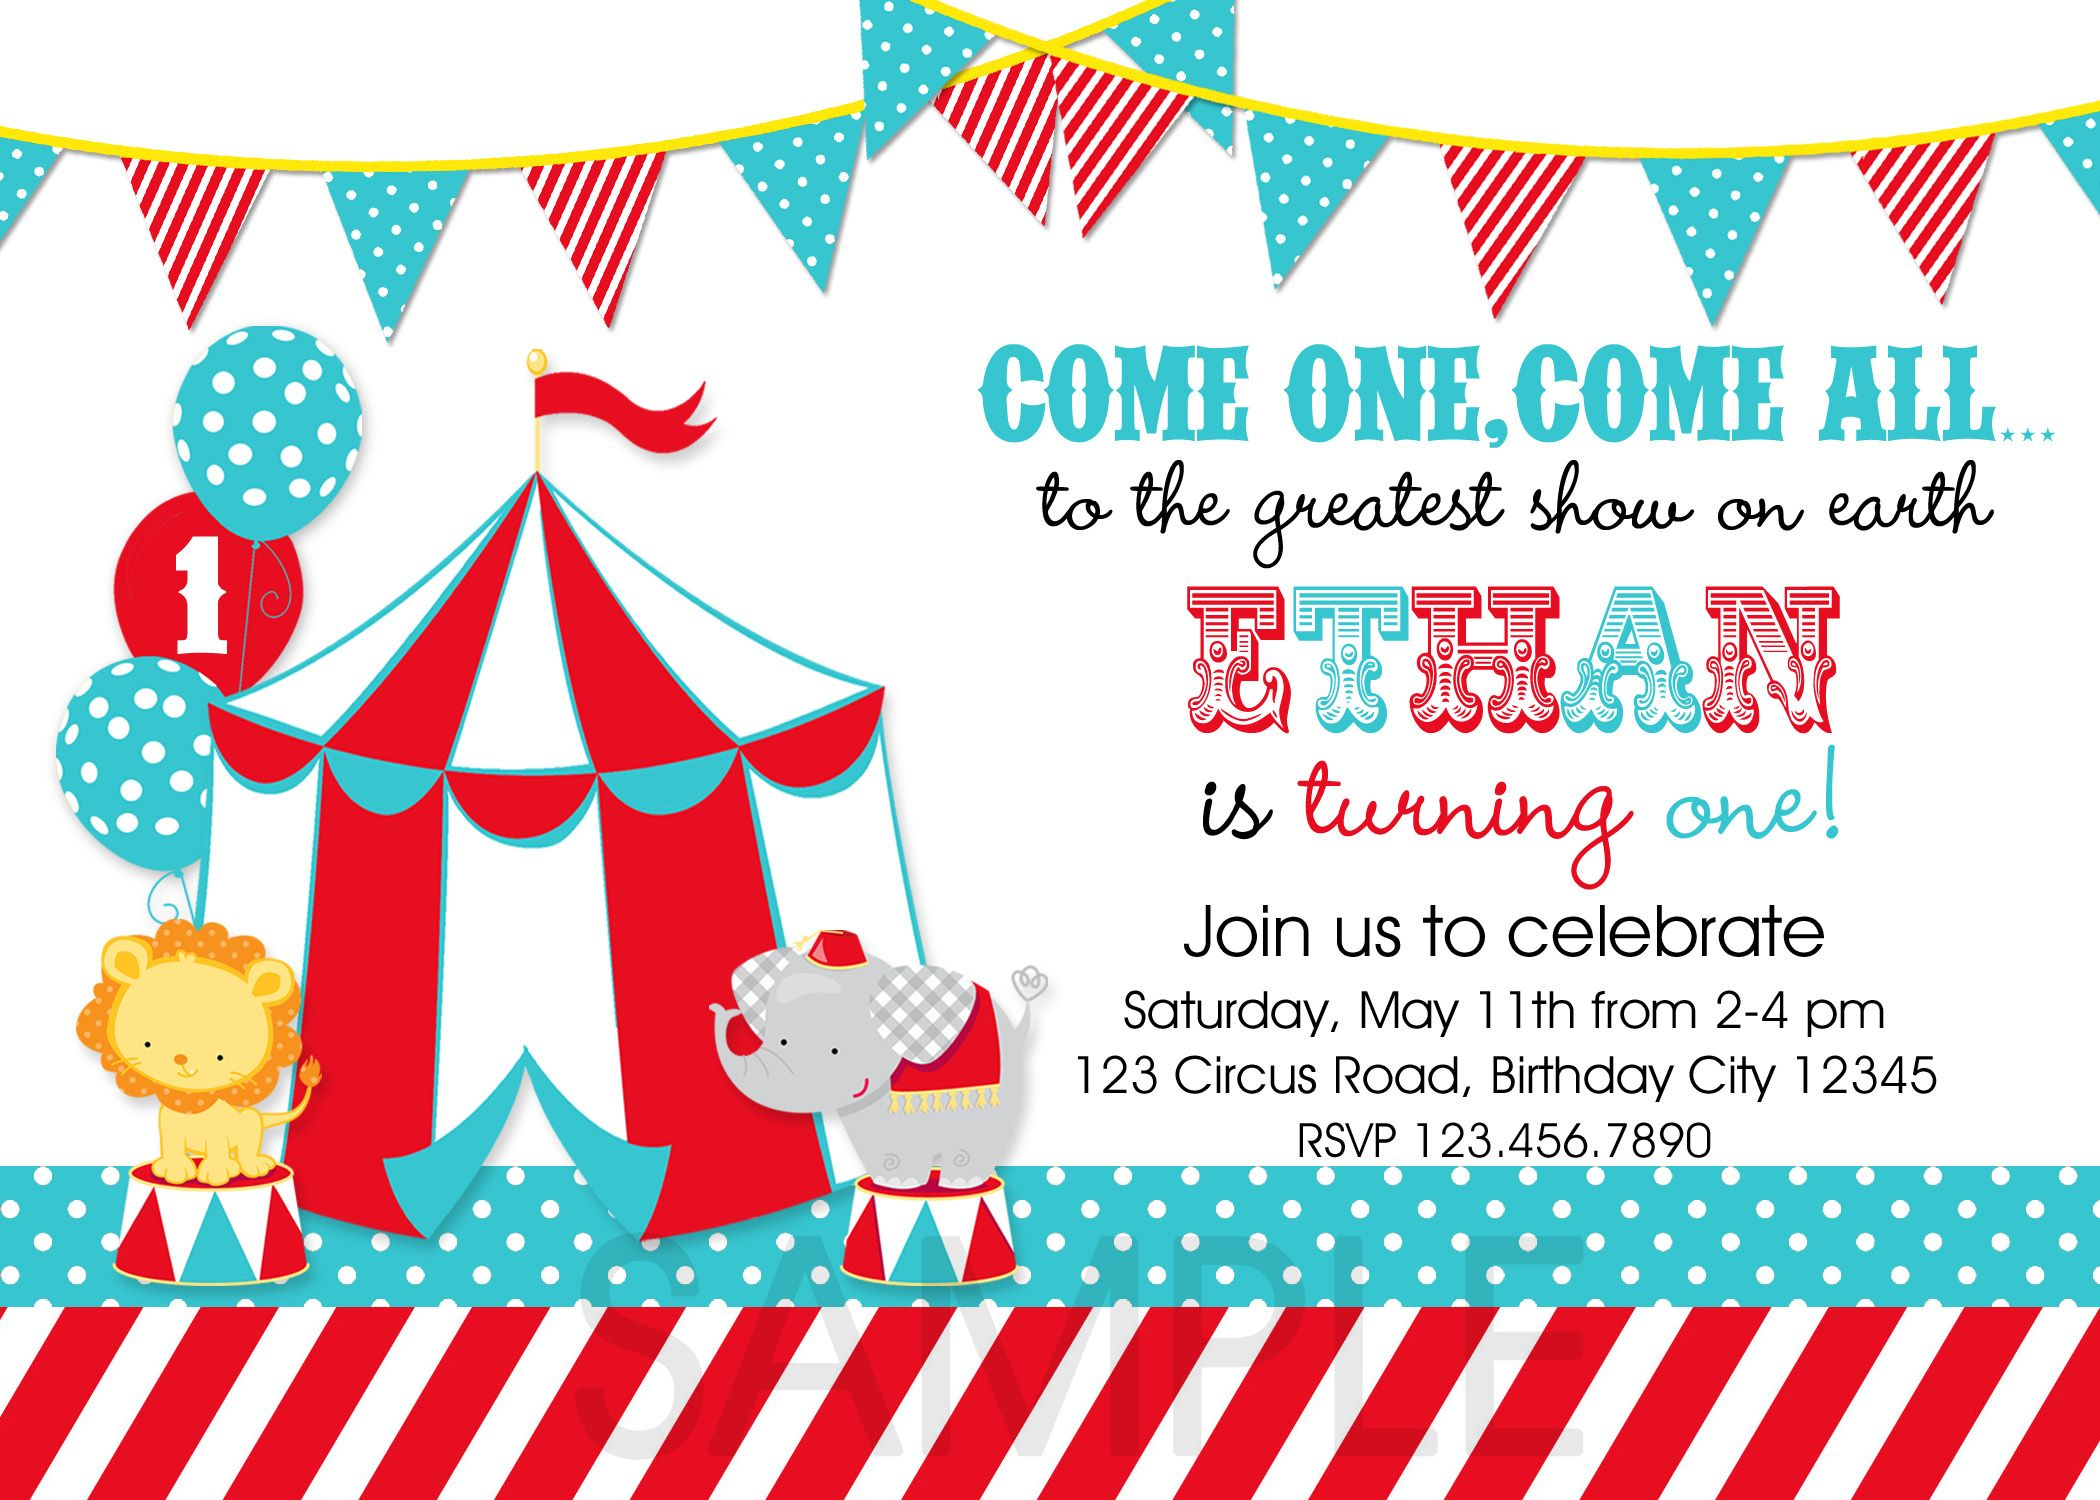 circus party invitations template 3Zcfy9xW – Carnival Party Invitation Templates